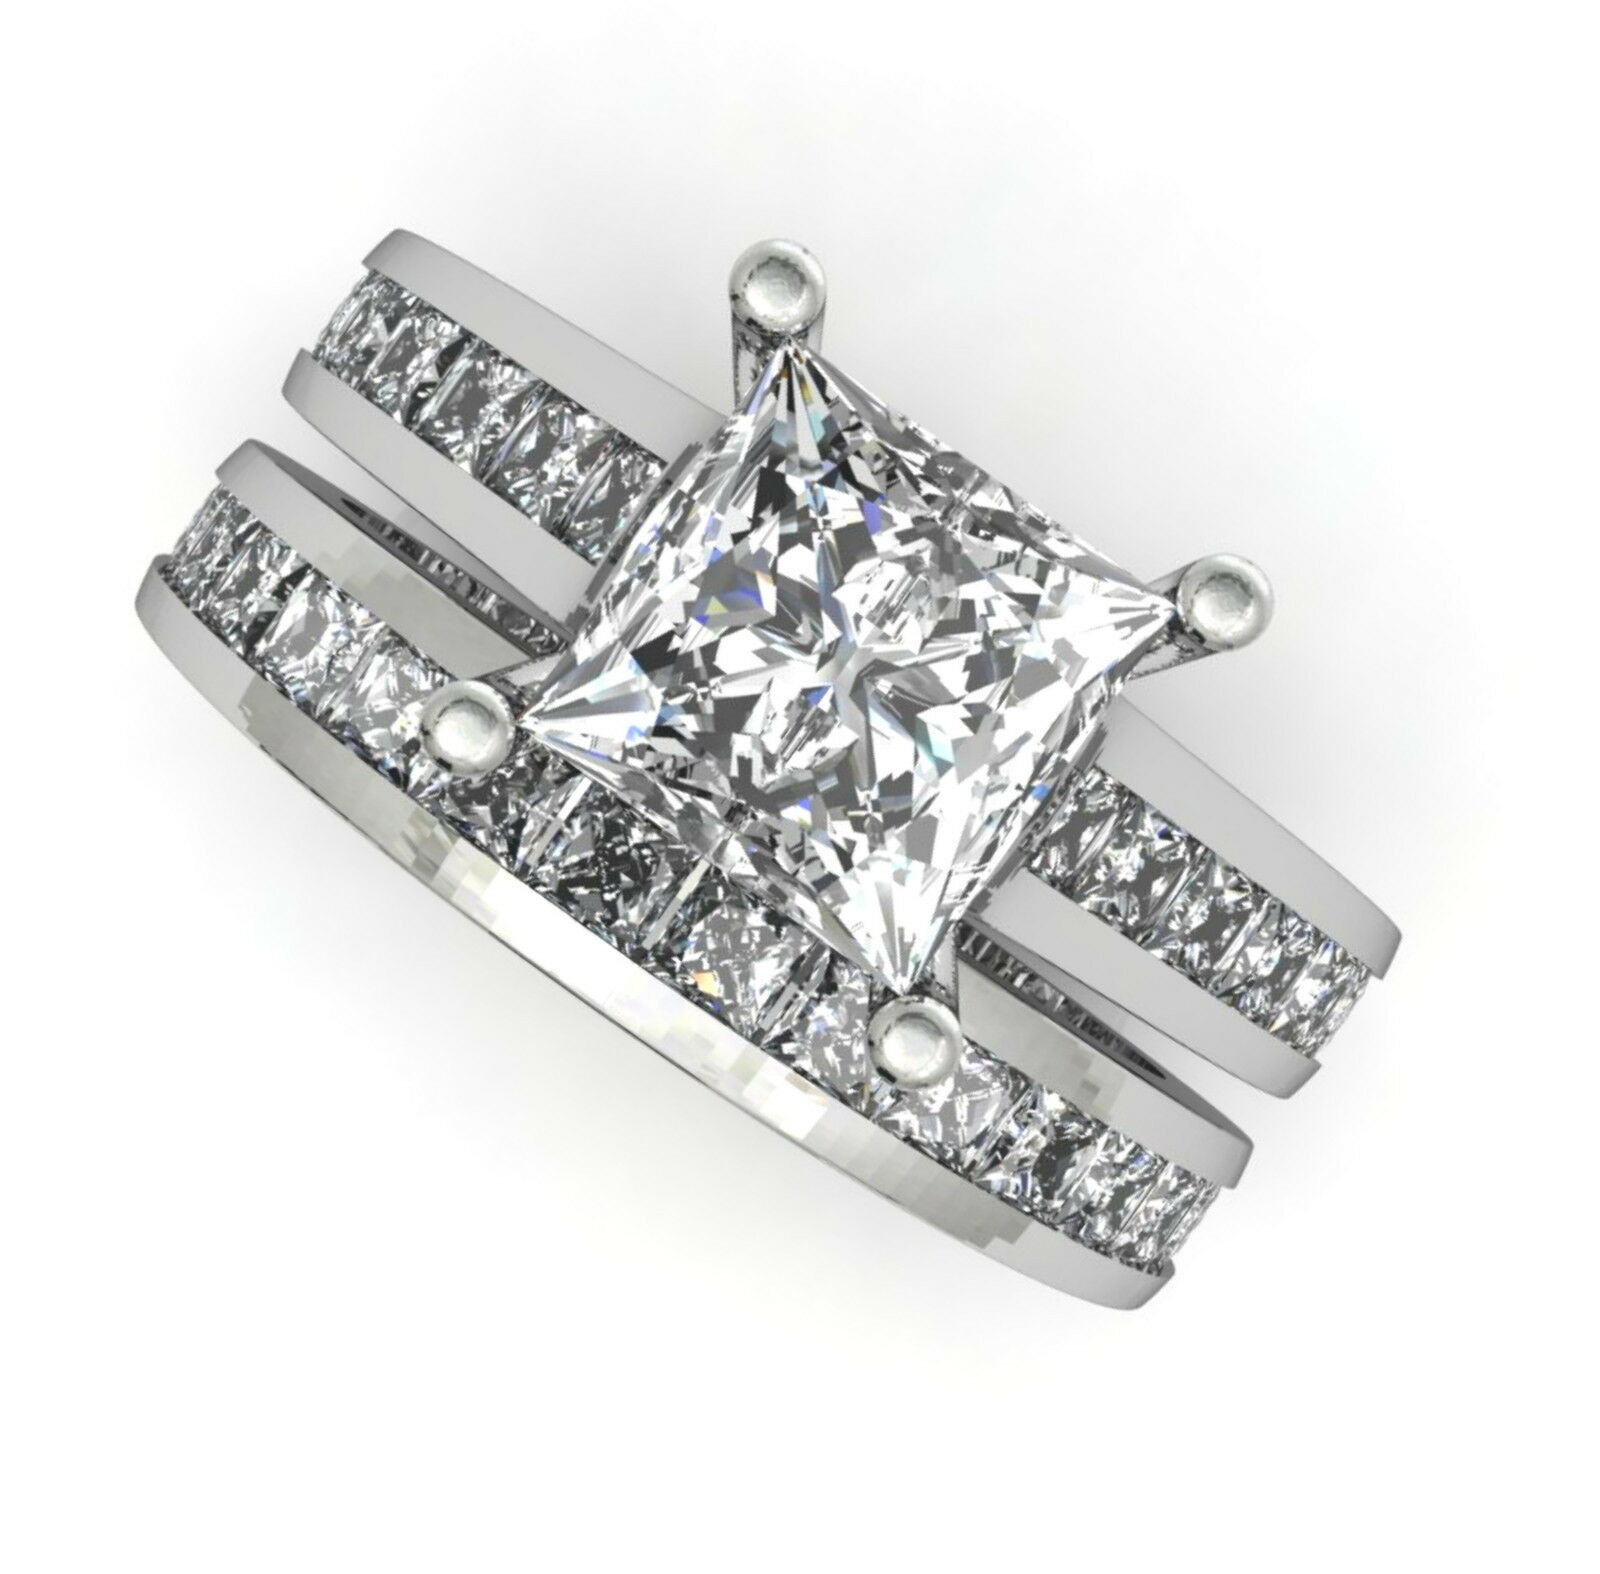 32ct Princess cut channel set engagement ring wedding band solid 14k white gold